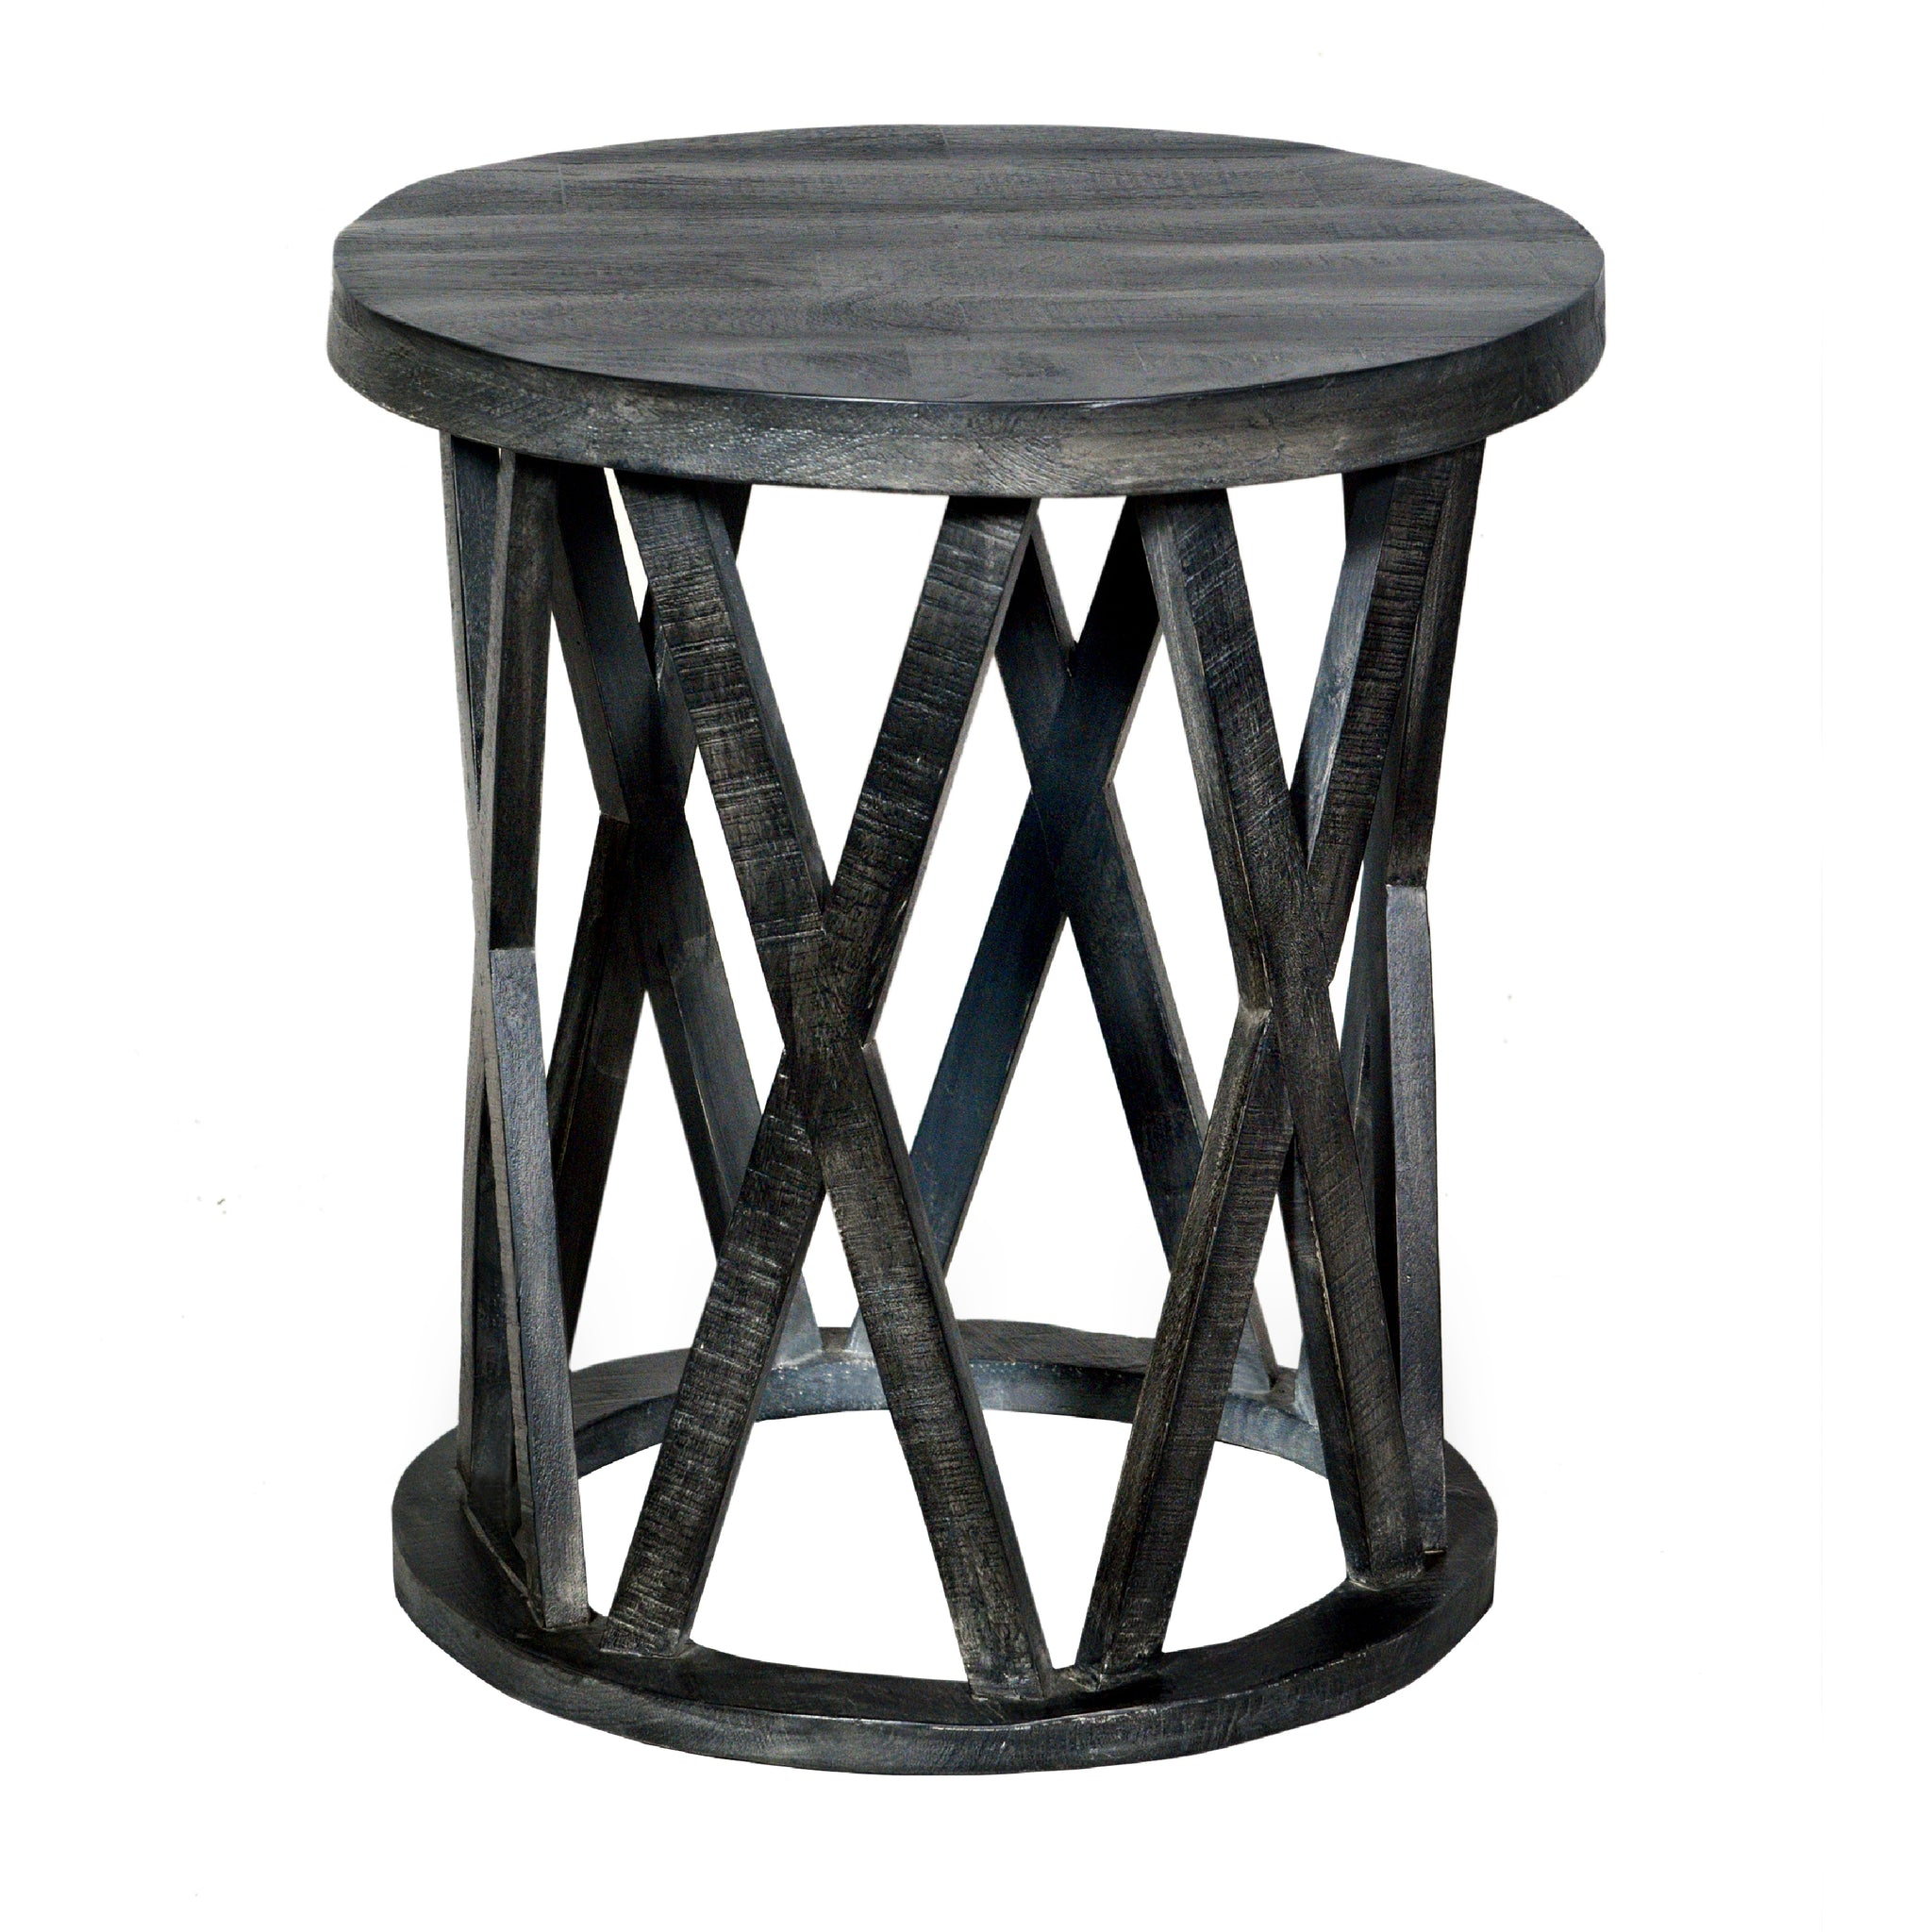 The Urban Port UPT-195129 Farmhouse Style Round Wooden End Table